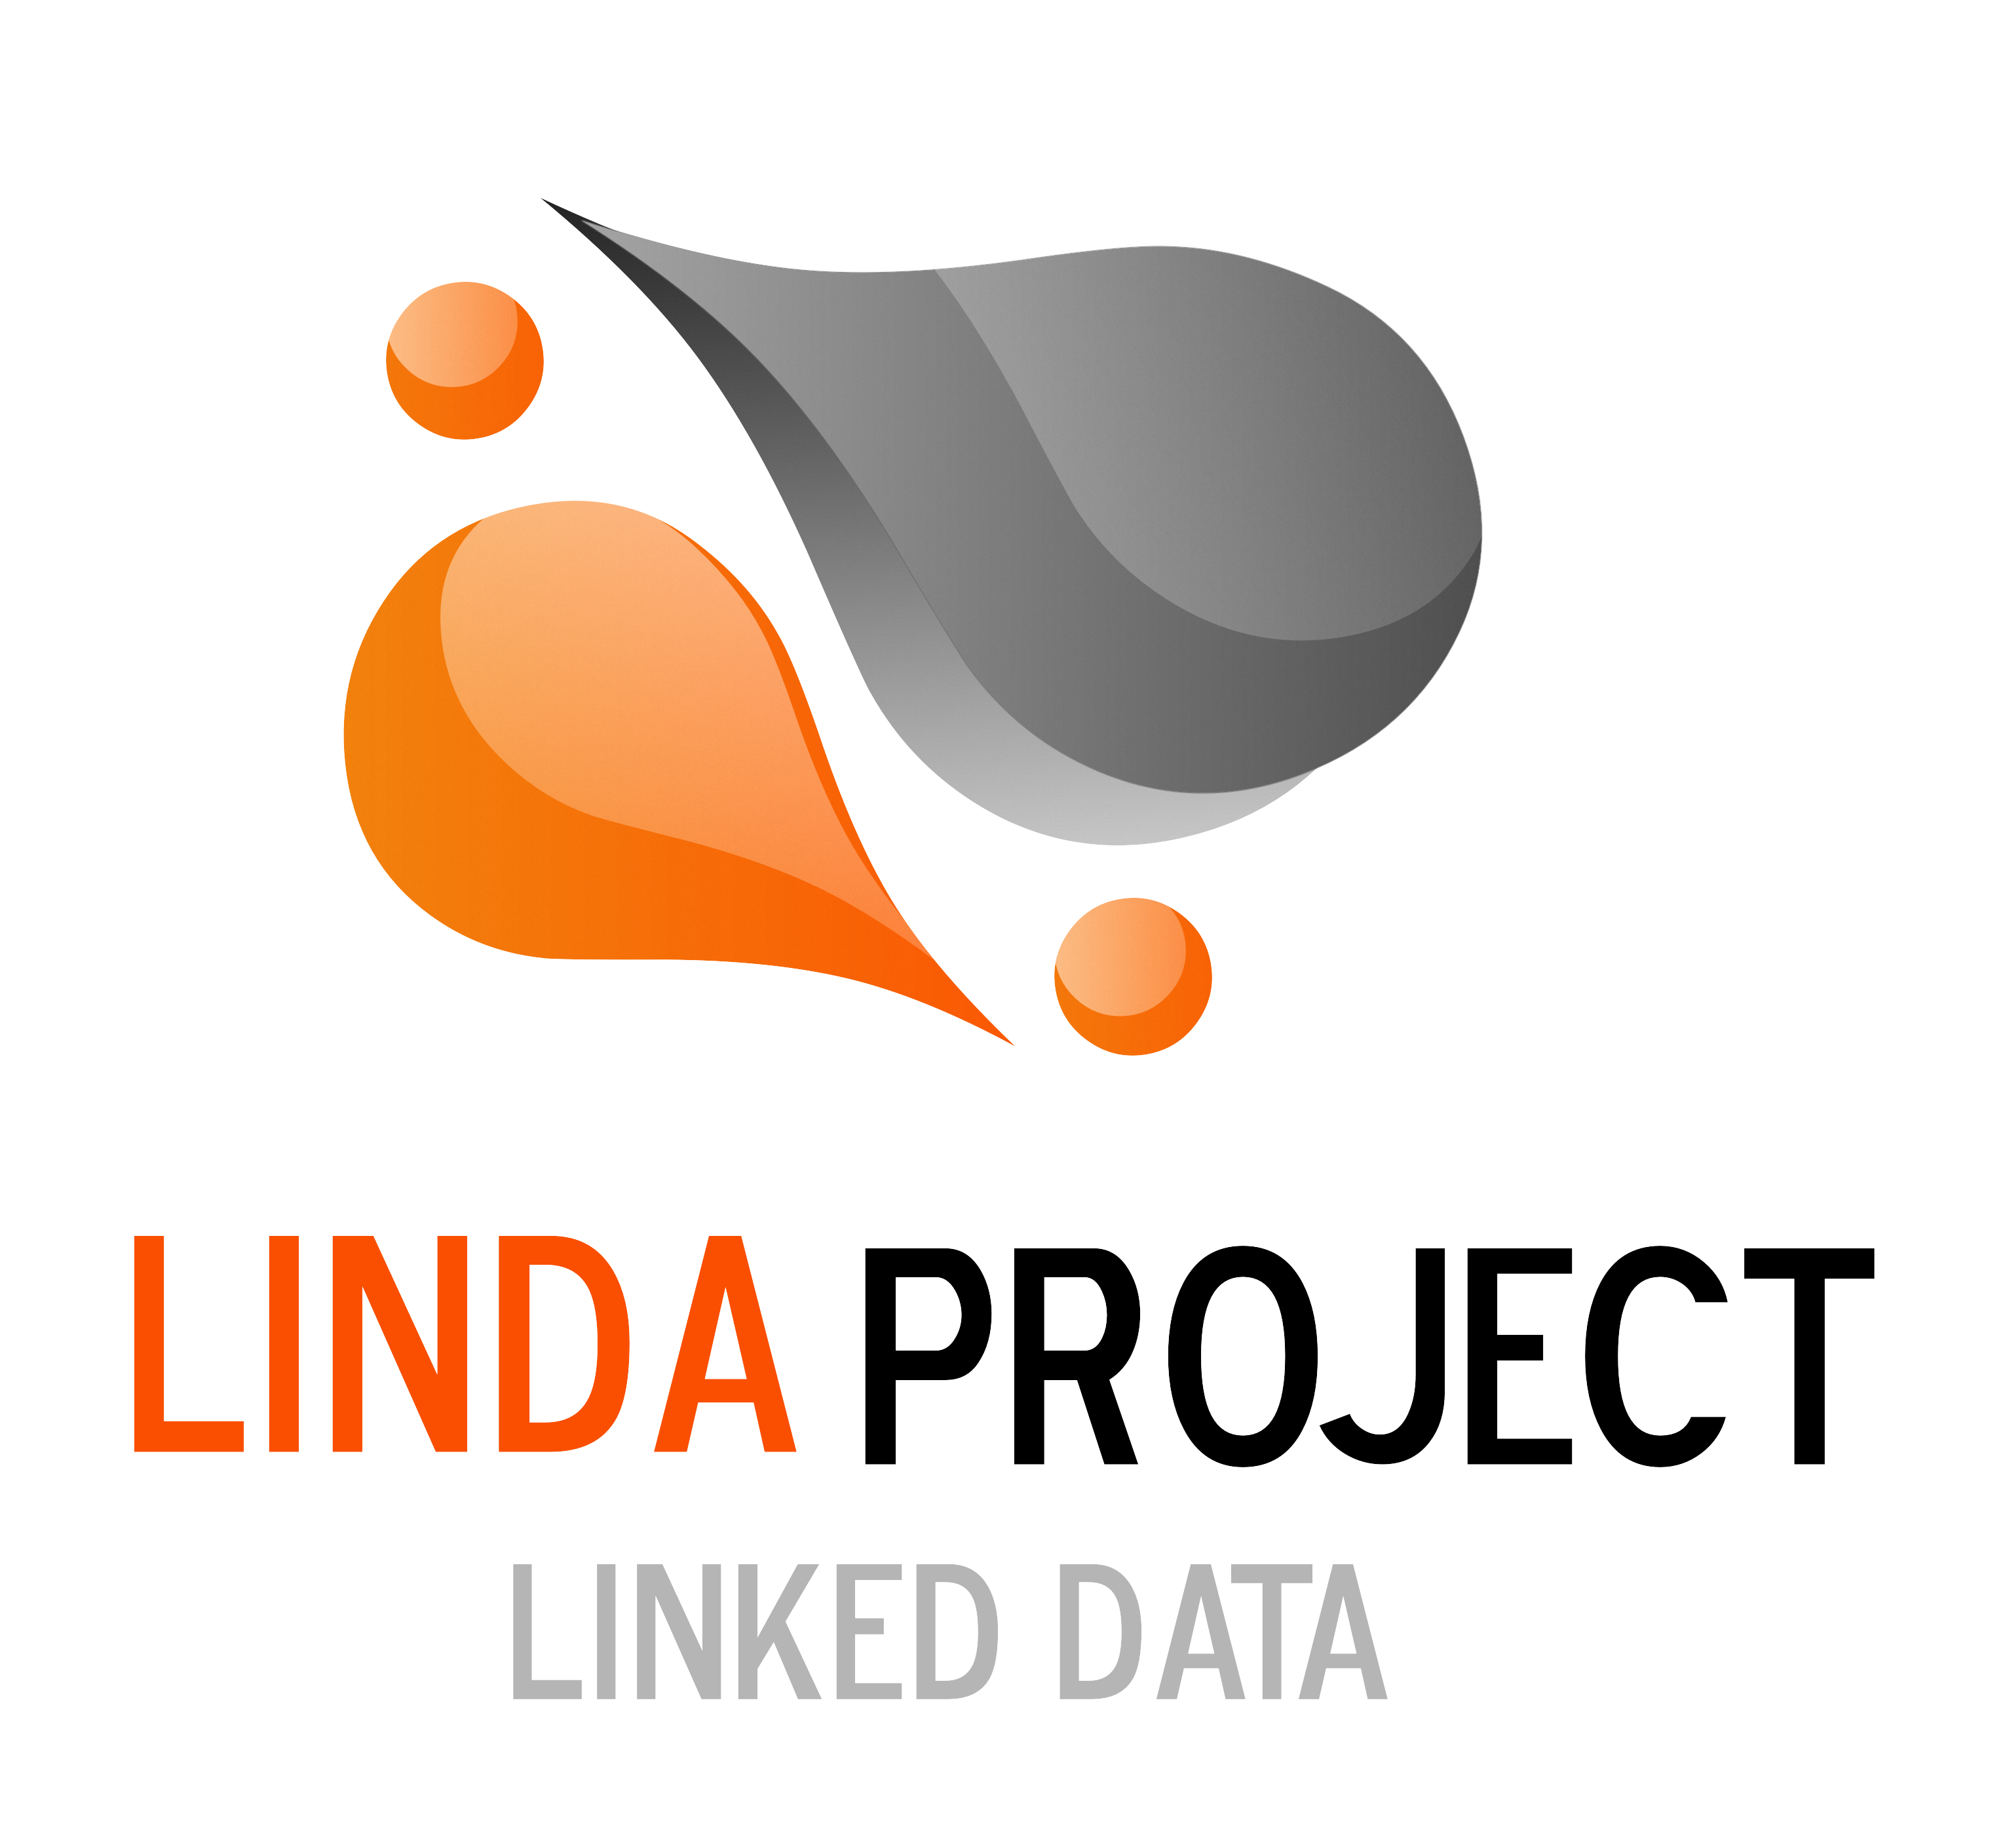 ELAN Projekt LinDA Linked Data